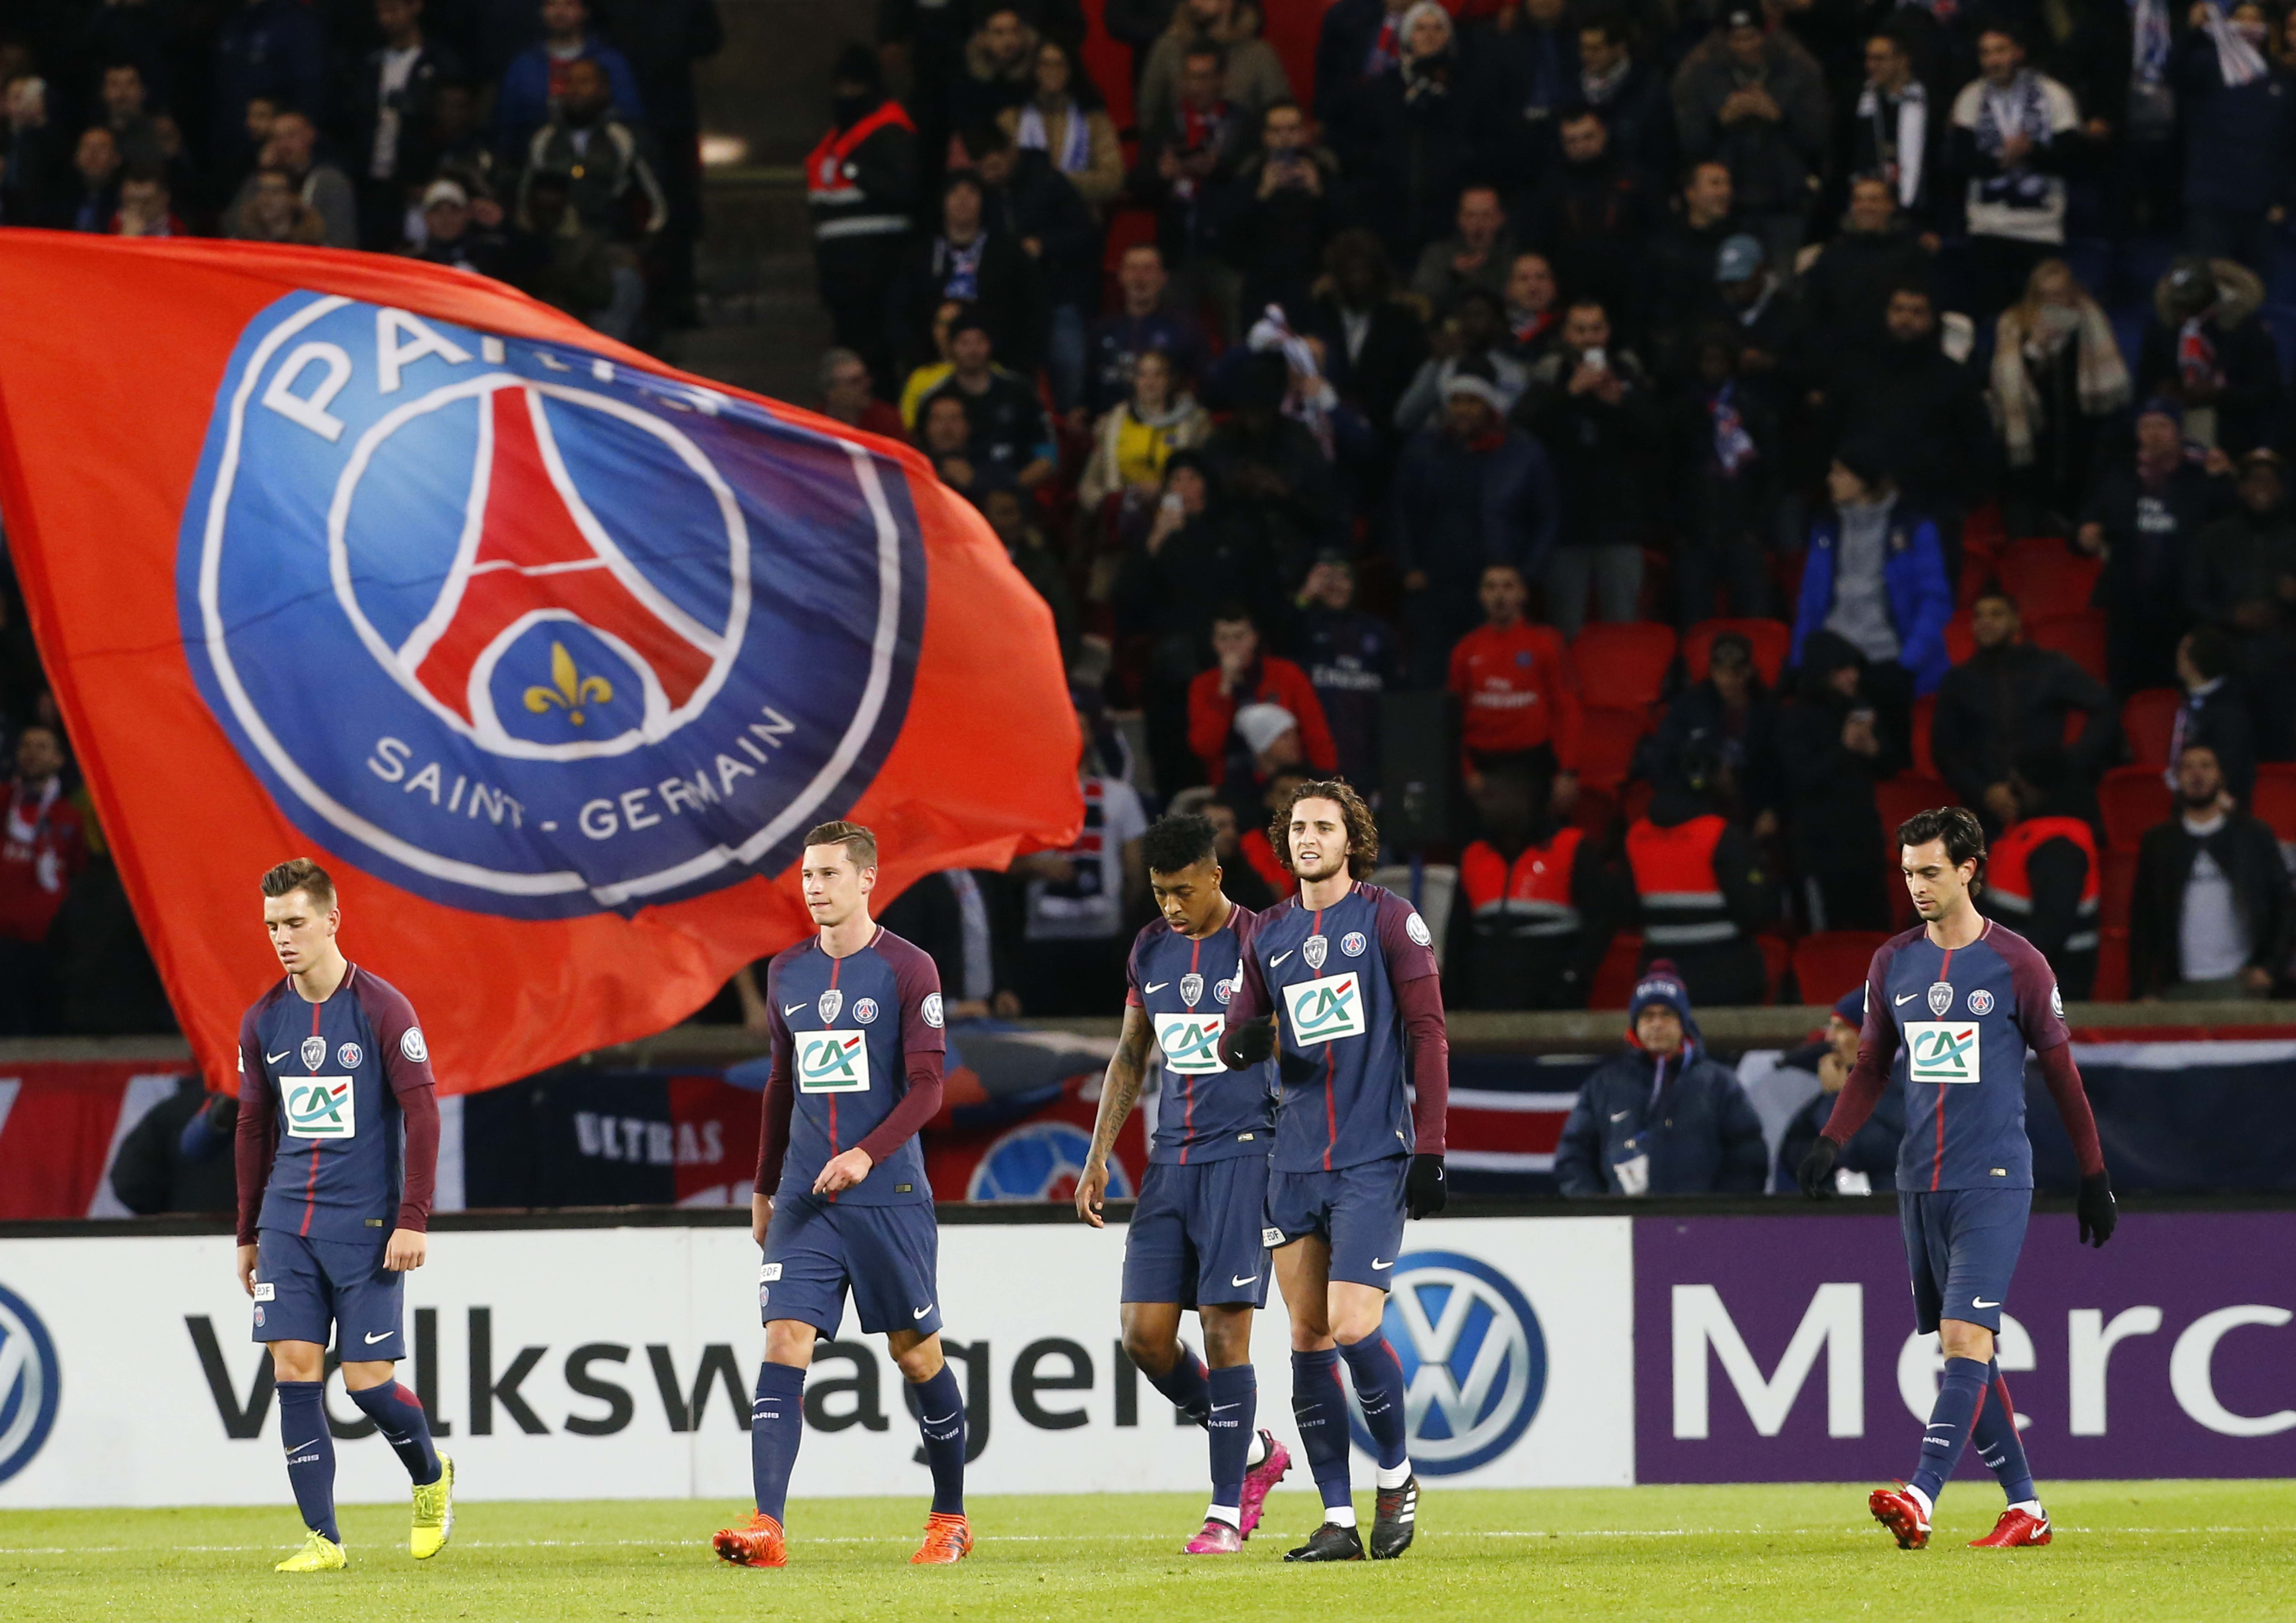 Coupe de france le psg ira sochaux et l om bourg en bresse coupe de france football - Resultat football coupe de france ...